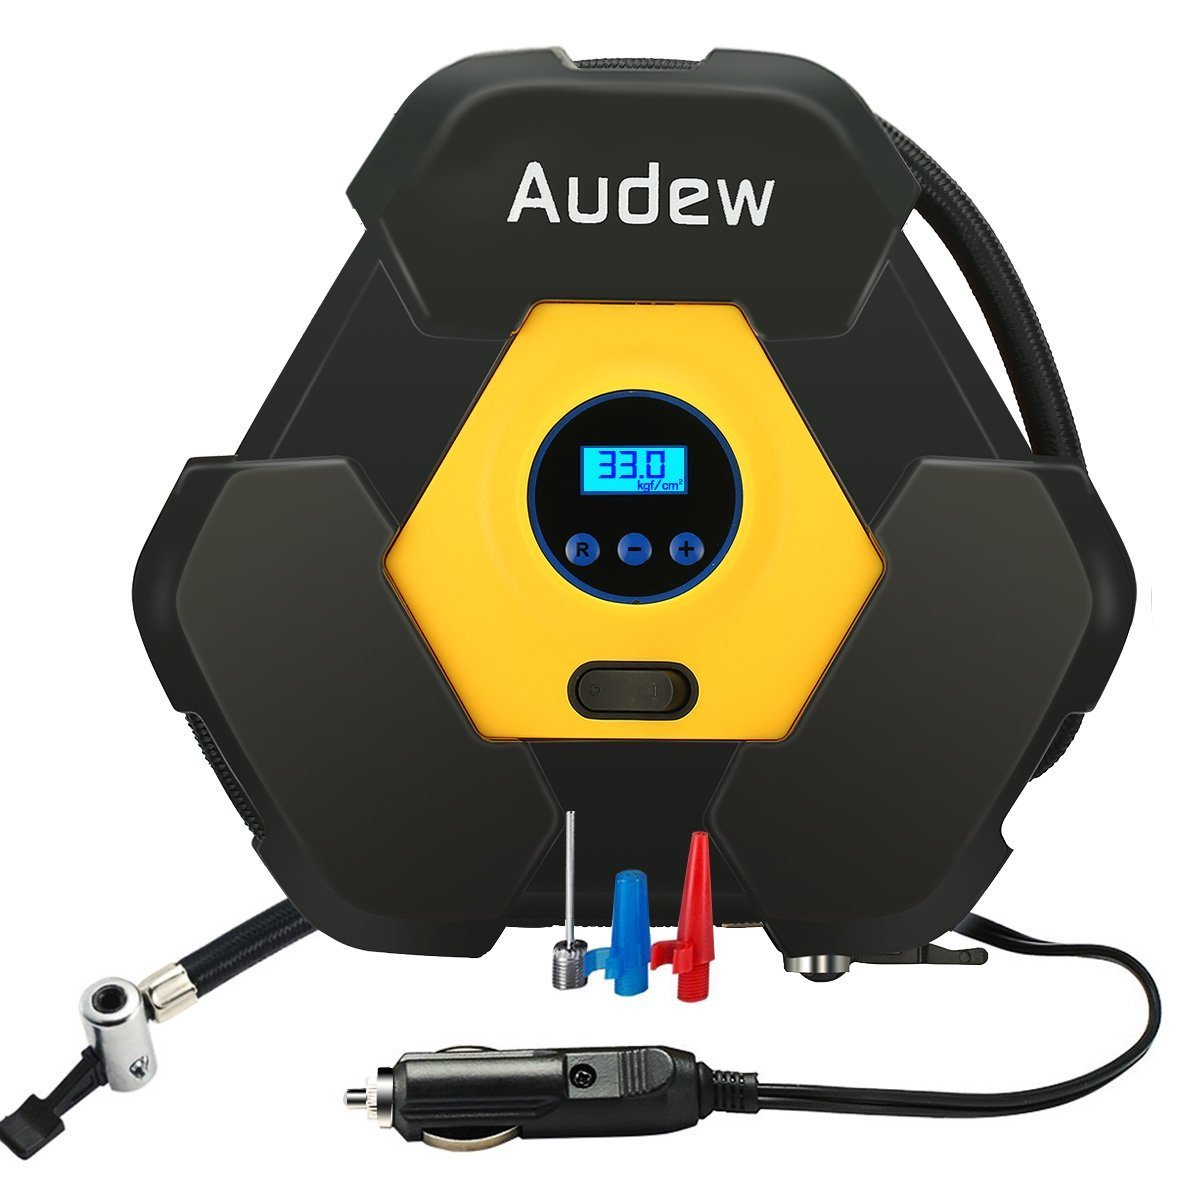 Audew Air Compressor Auto Digital Tire Inflator 12v 150 Psi Internal Coil Wiring Diagram Pump 3 In 1 Portable For Car Truck Bicycle Rv And Other Inflatables